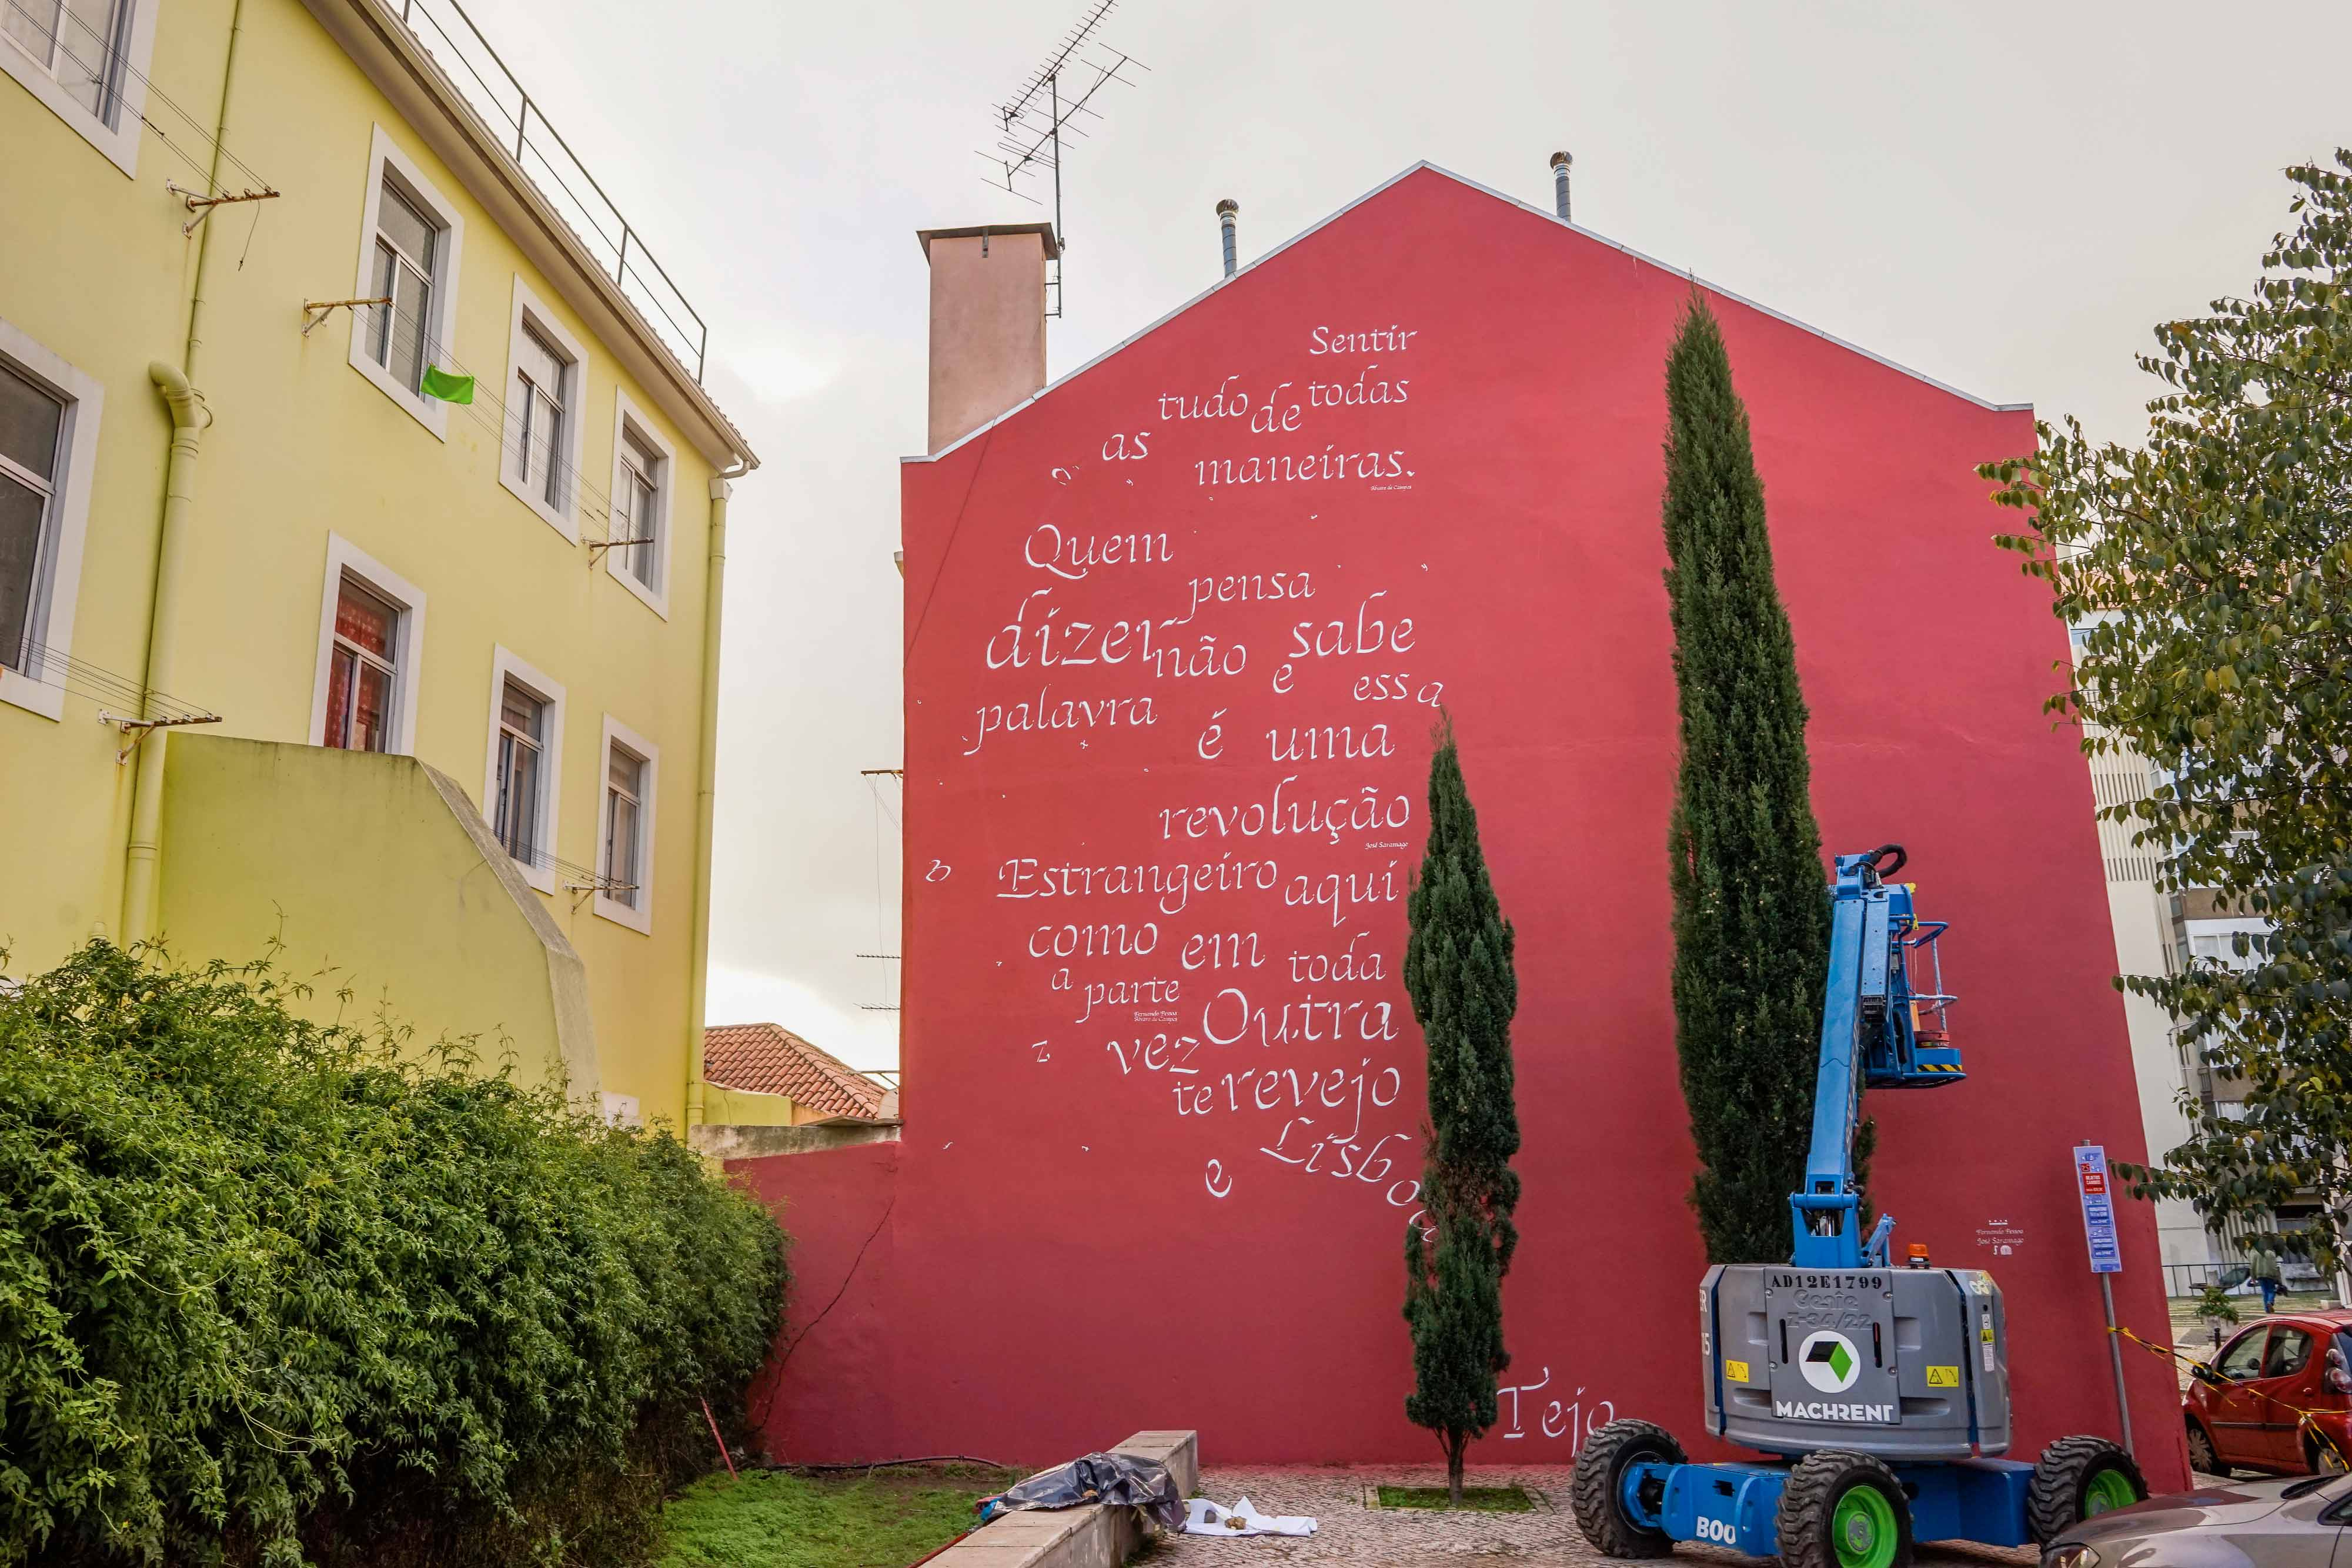 To Pessoa and Saramago: a poetry homage by Opiemme in Lisbon, Portugal. Artes & contextos Opiemme1